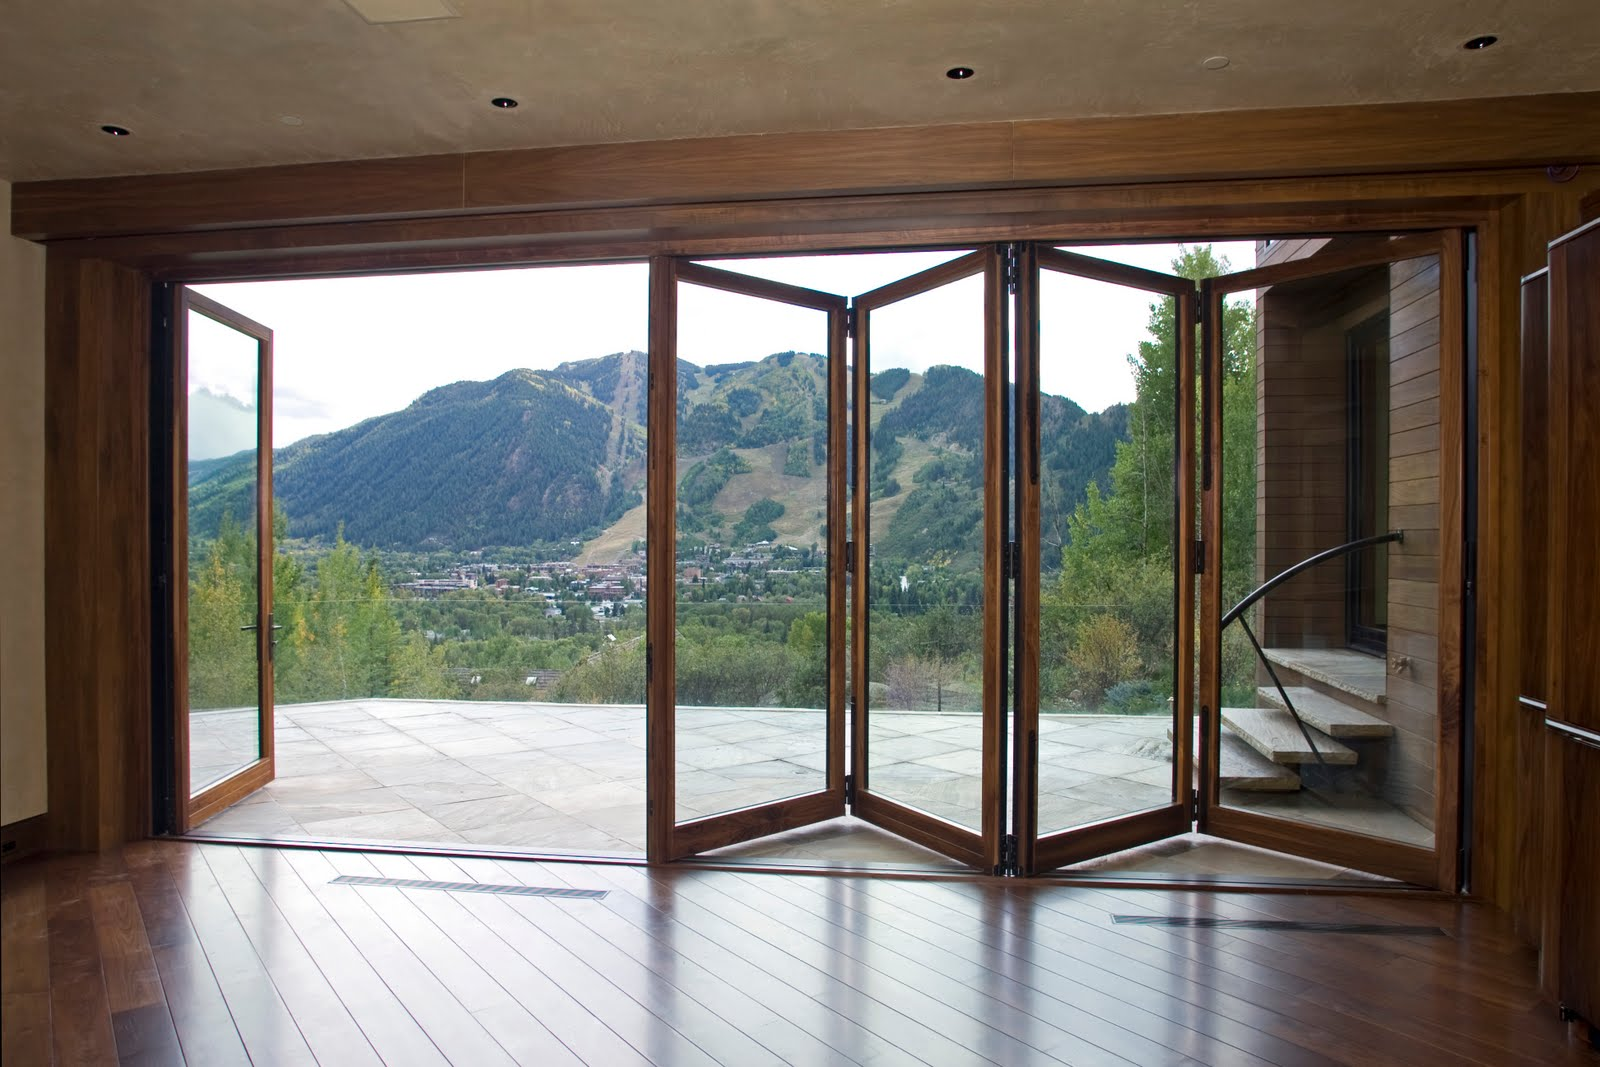 grabill windows and doors product highlight folding doors On retractable sliding glass doors